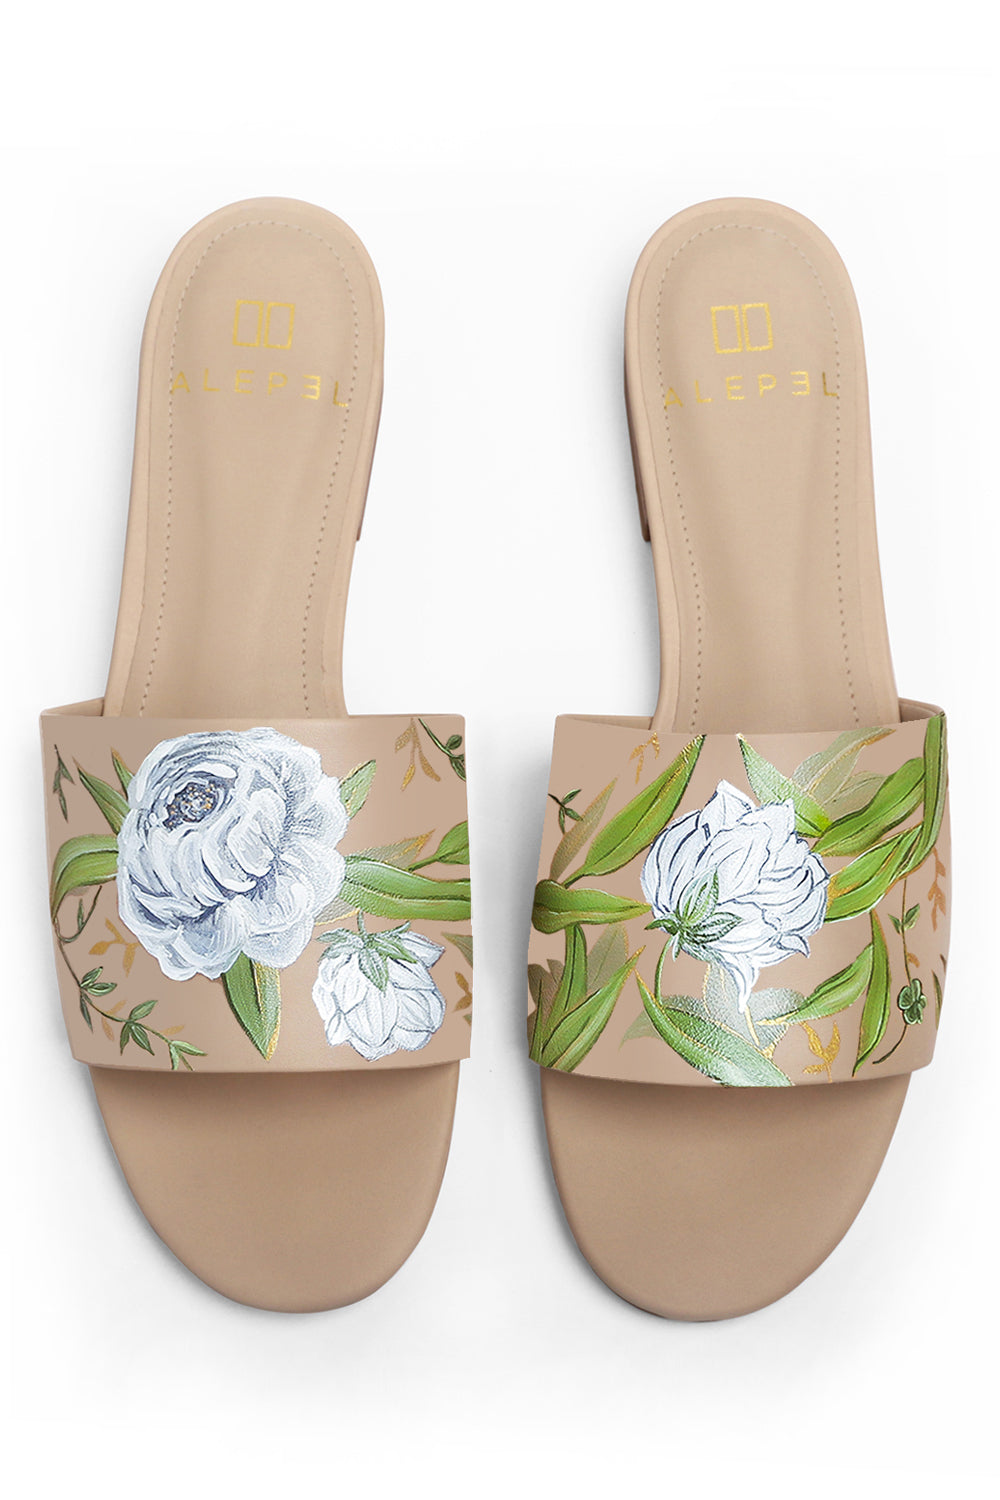 White Floral Hand Painted Slide in Nude